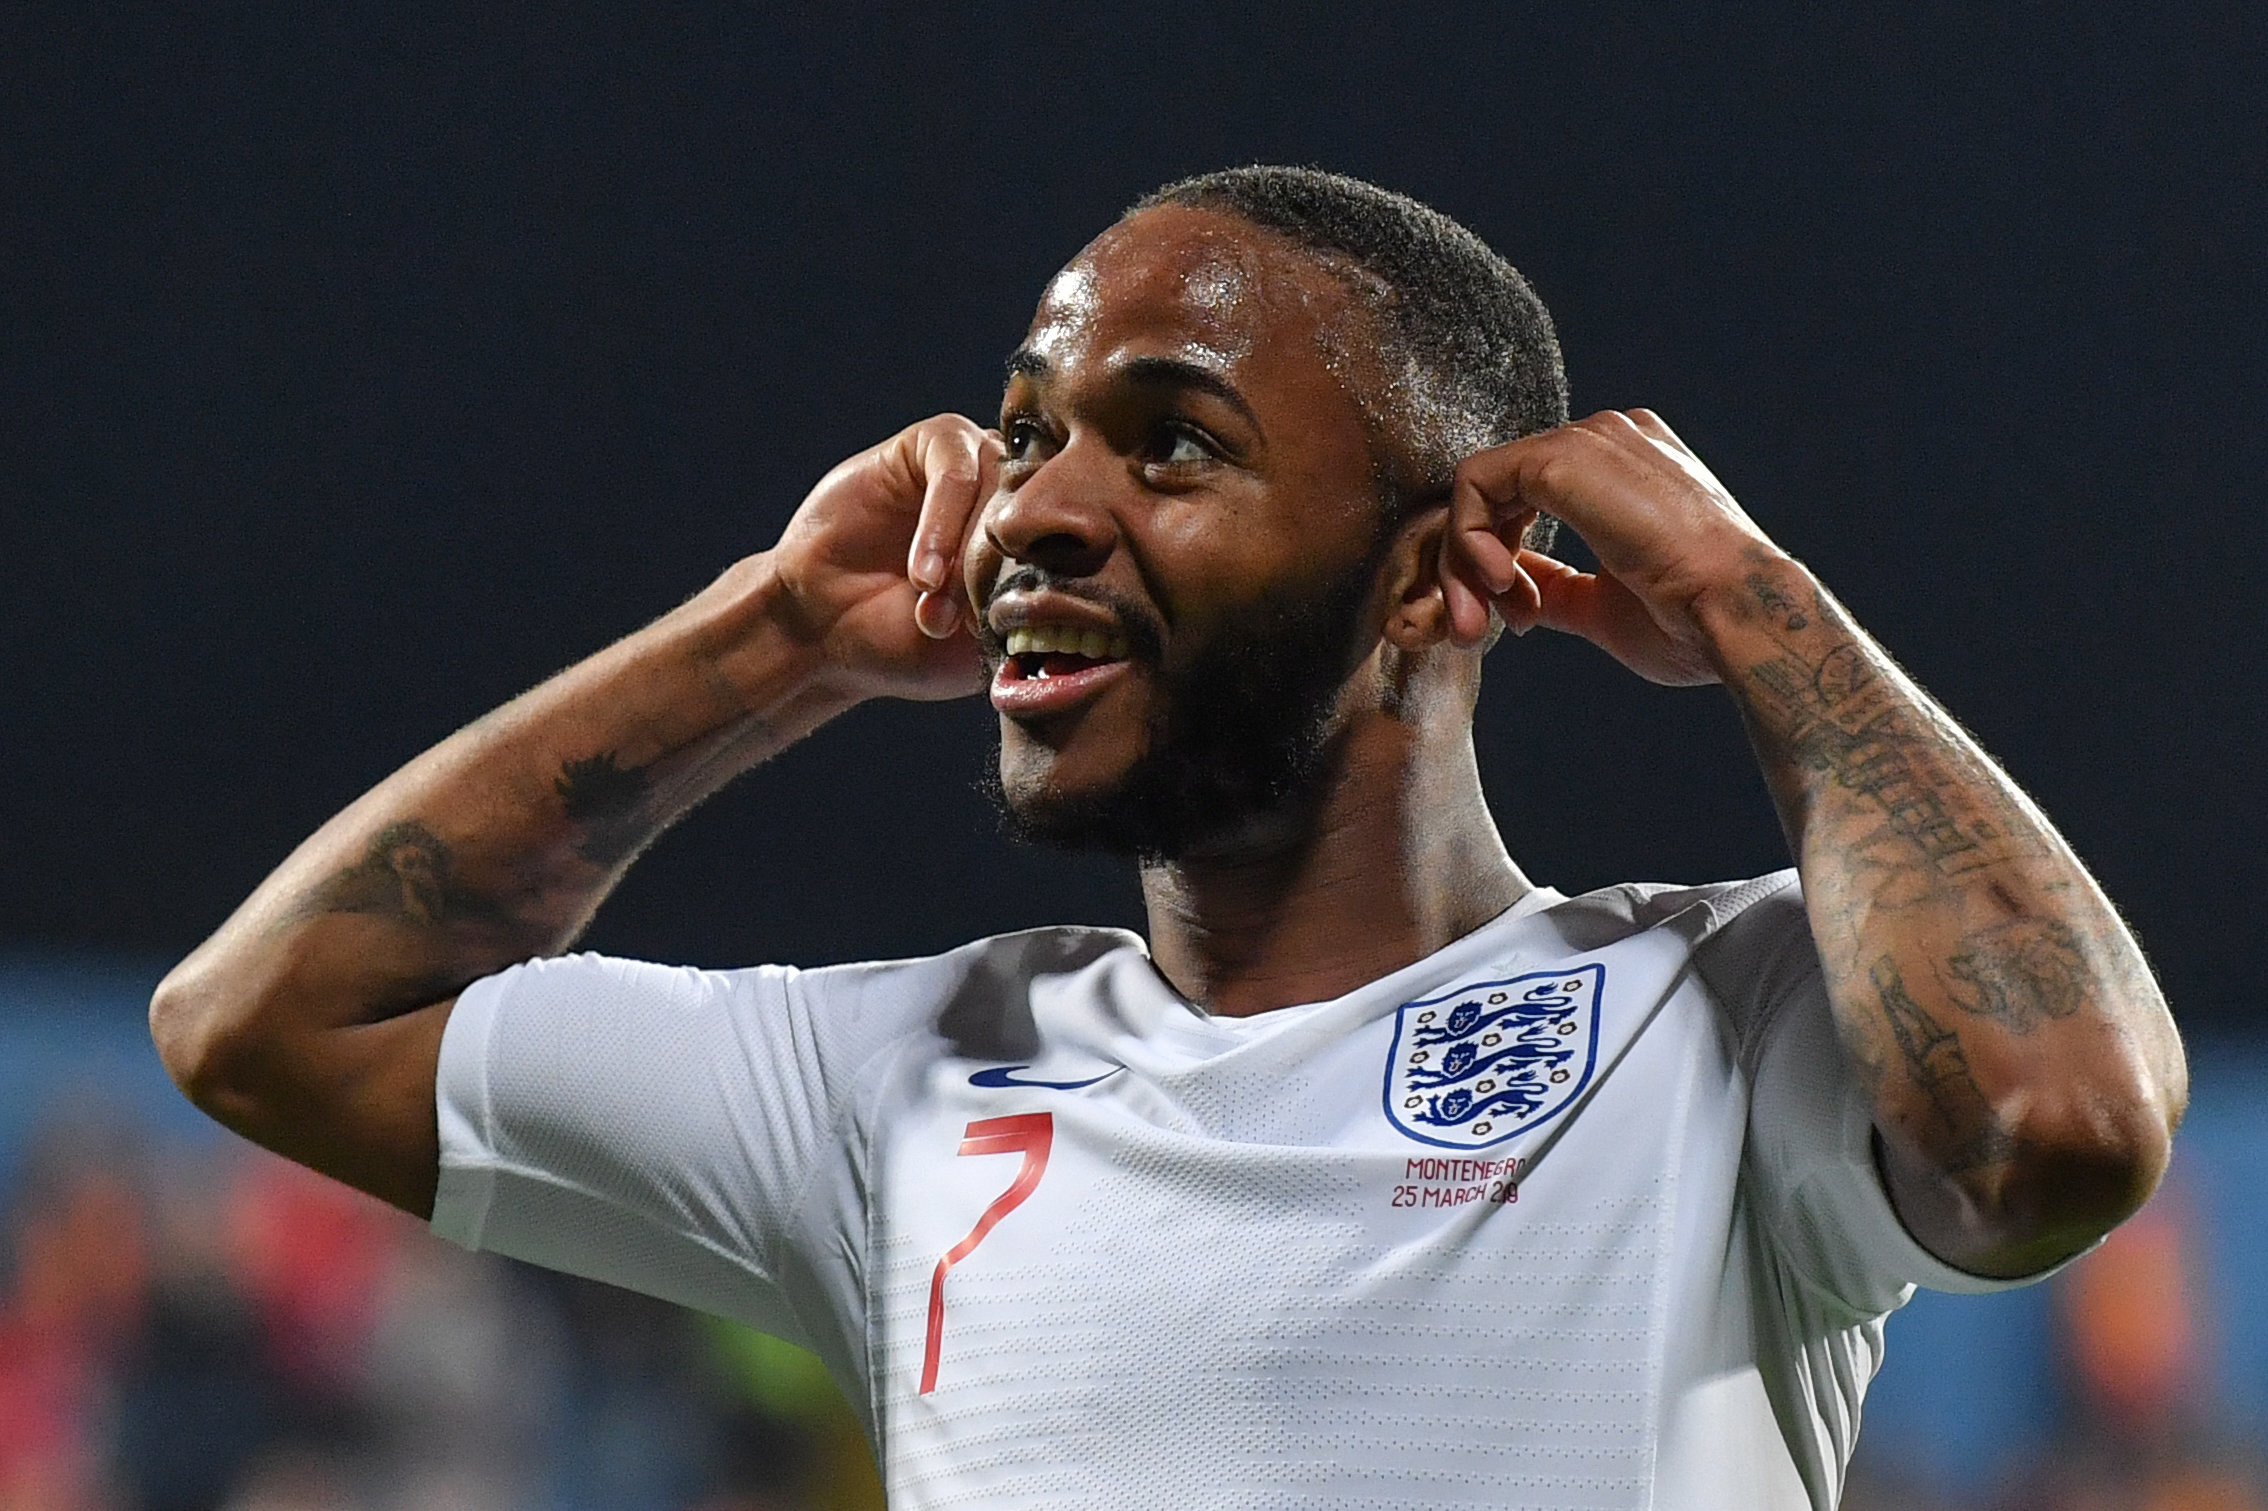 Raheem Sterling has been a vocal spokesman against racial abuse of footballers